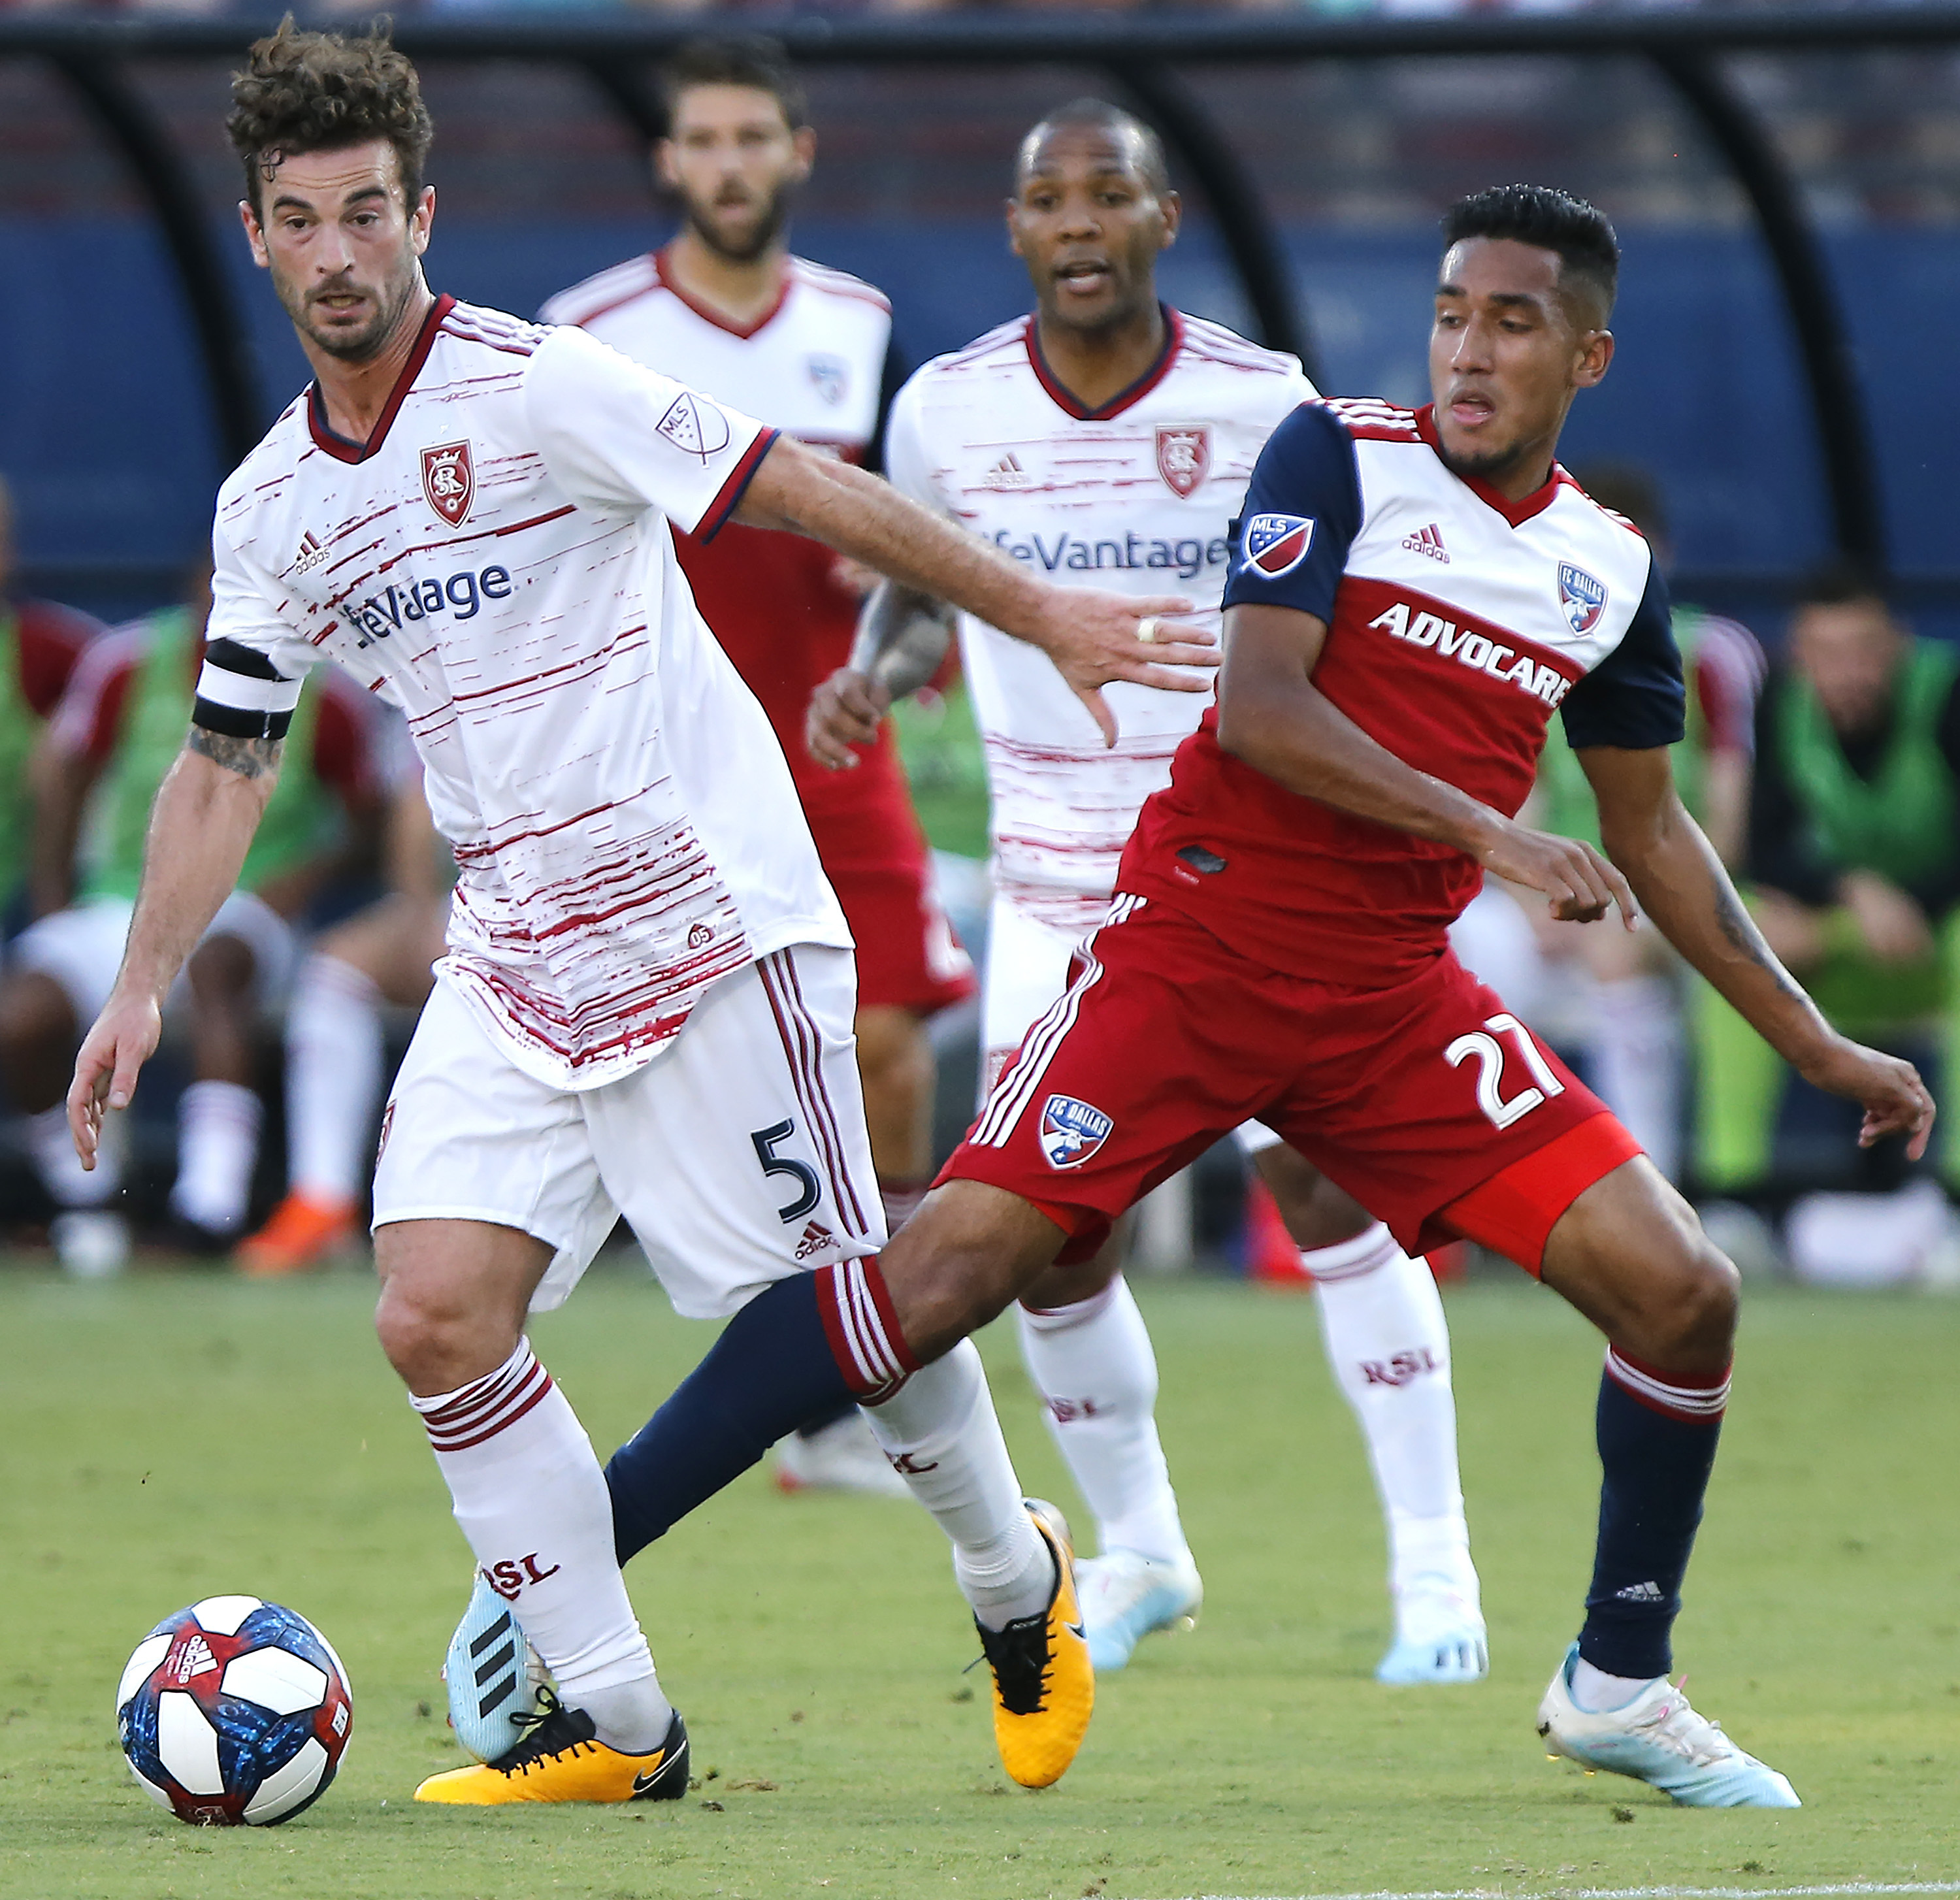 FC Dallas forward Jesus Ferreira (27) and Real Salt Lake midfielder Kyle Beckerman (5) become entangled during the first half of an MLS soccer match in Frisco, Texas, Saturday, July 27, 2019. (Stewart F. House/The Dallas Morning News via AP)